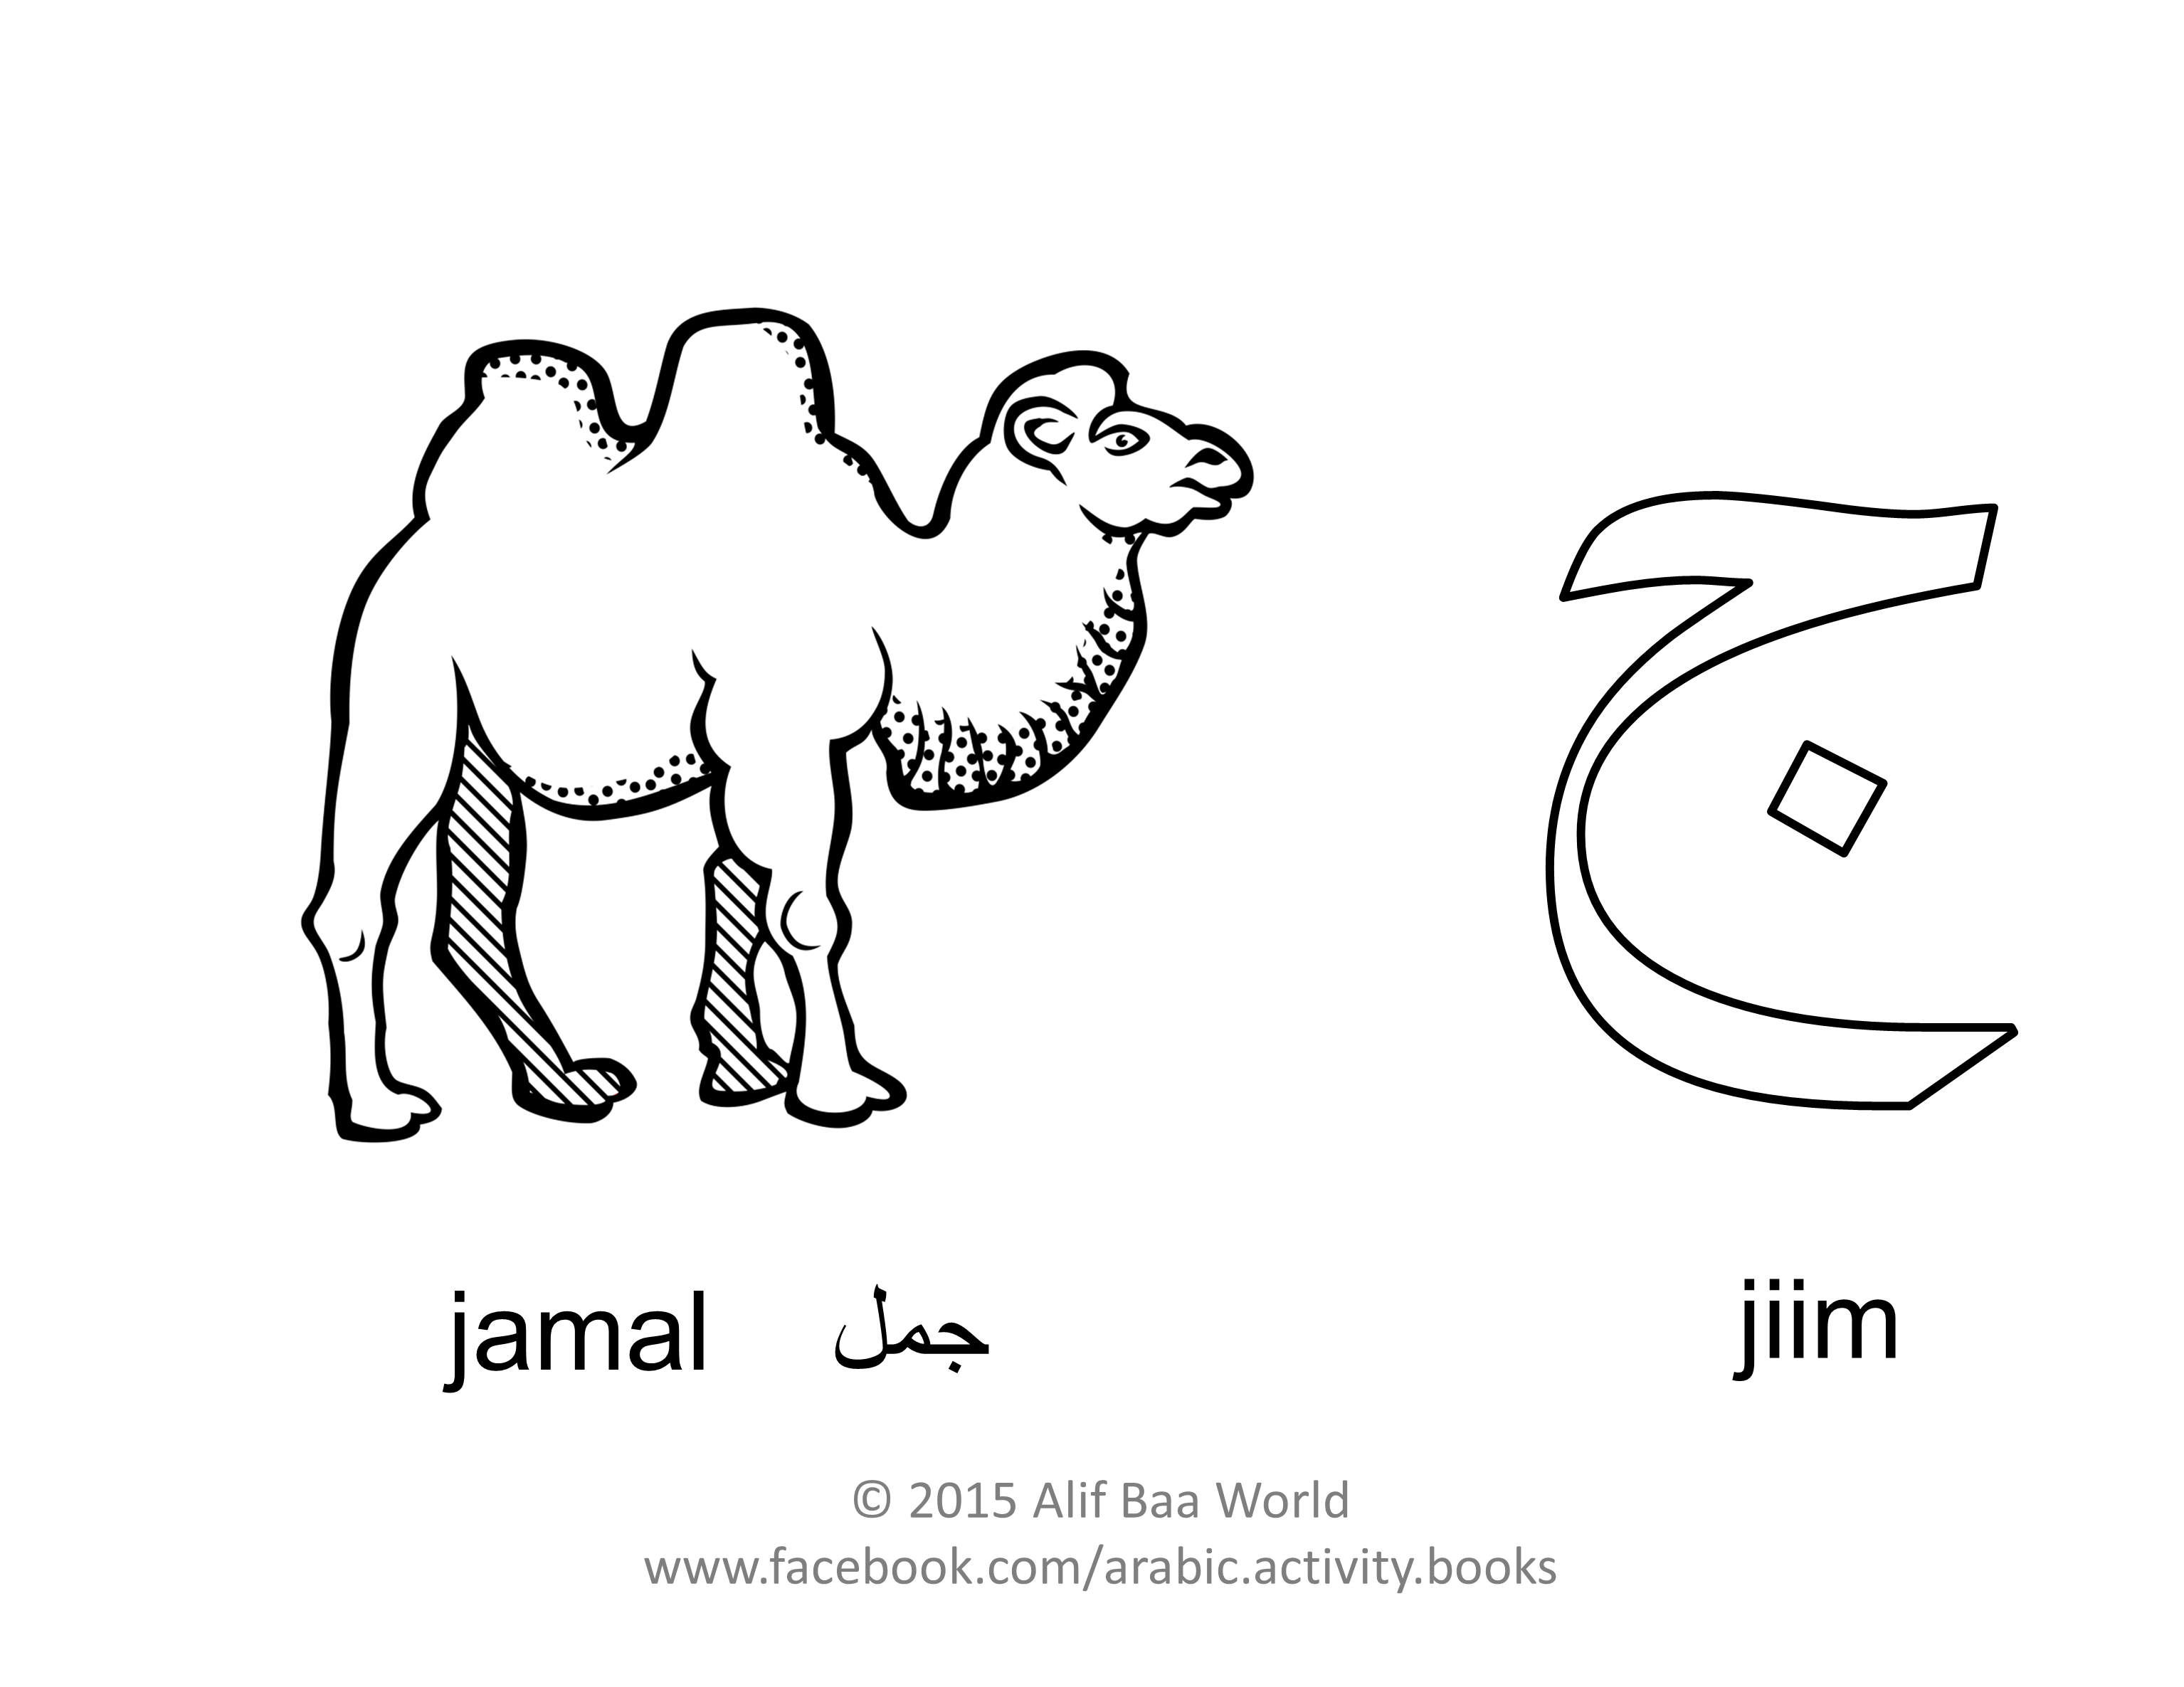 Arabic alphabet for kids with cute animals and fruit for each letter - The Fifth Letter Of The Arabic Alphabet Is Name Jiim